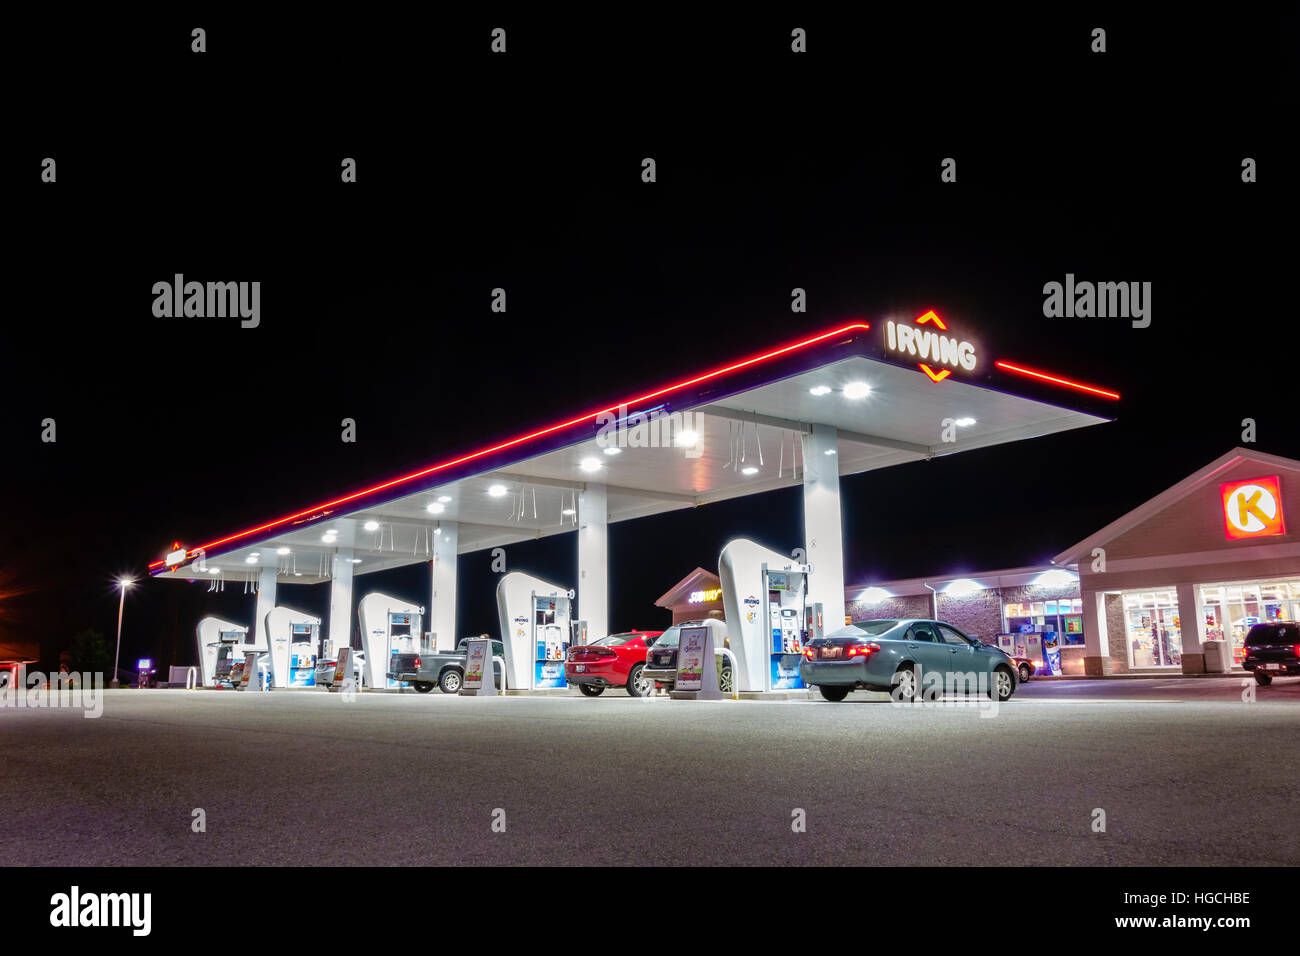 petrol station photos petrol station images alamy. Black Bedroom Furniture Sets. Home Design Ideas